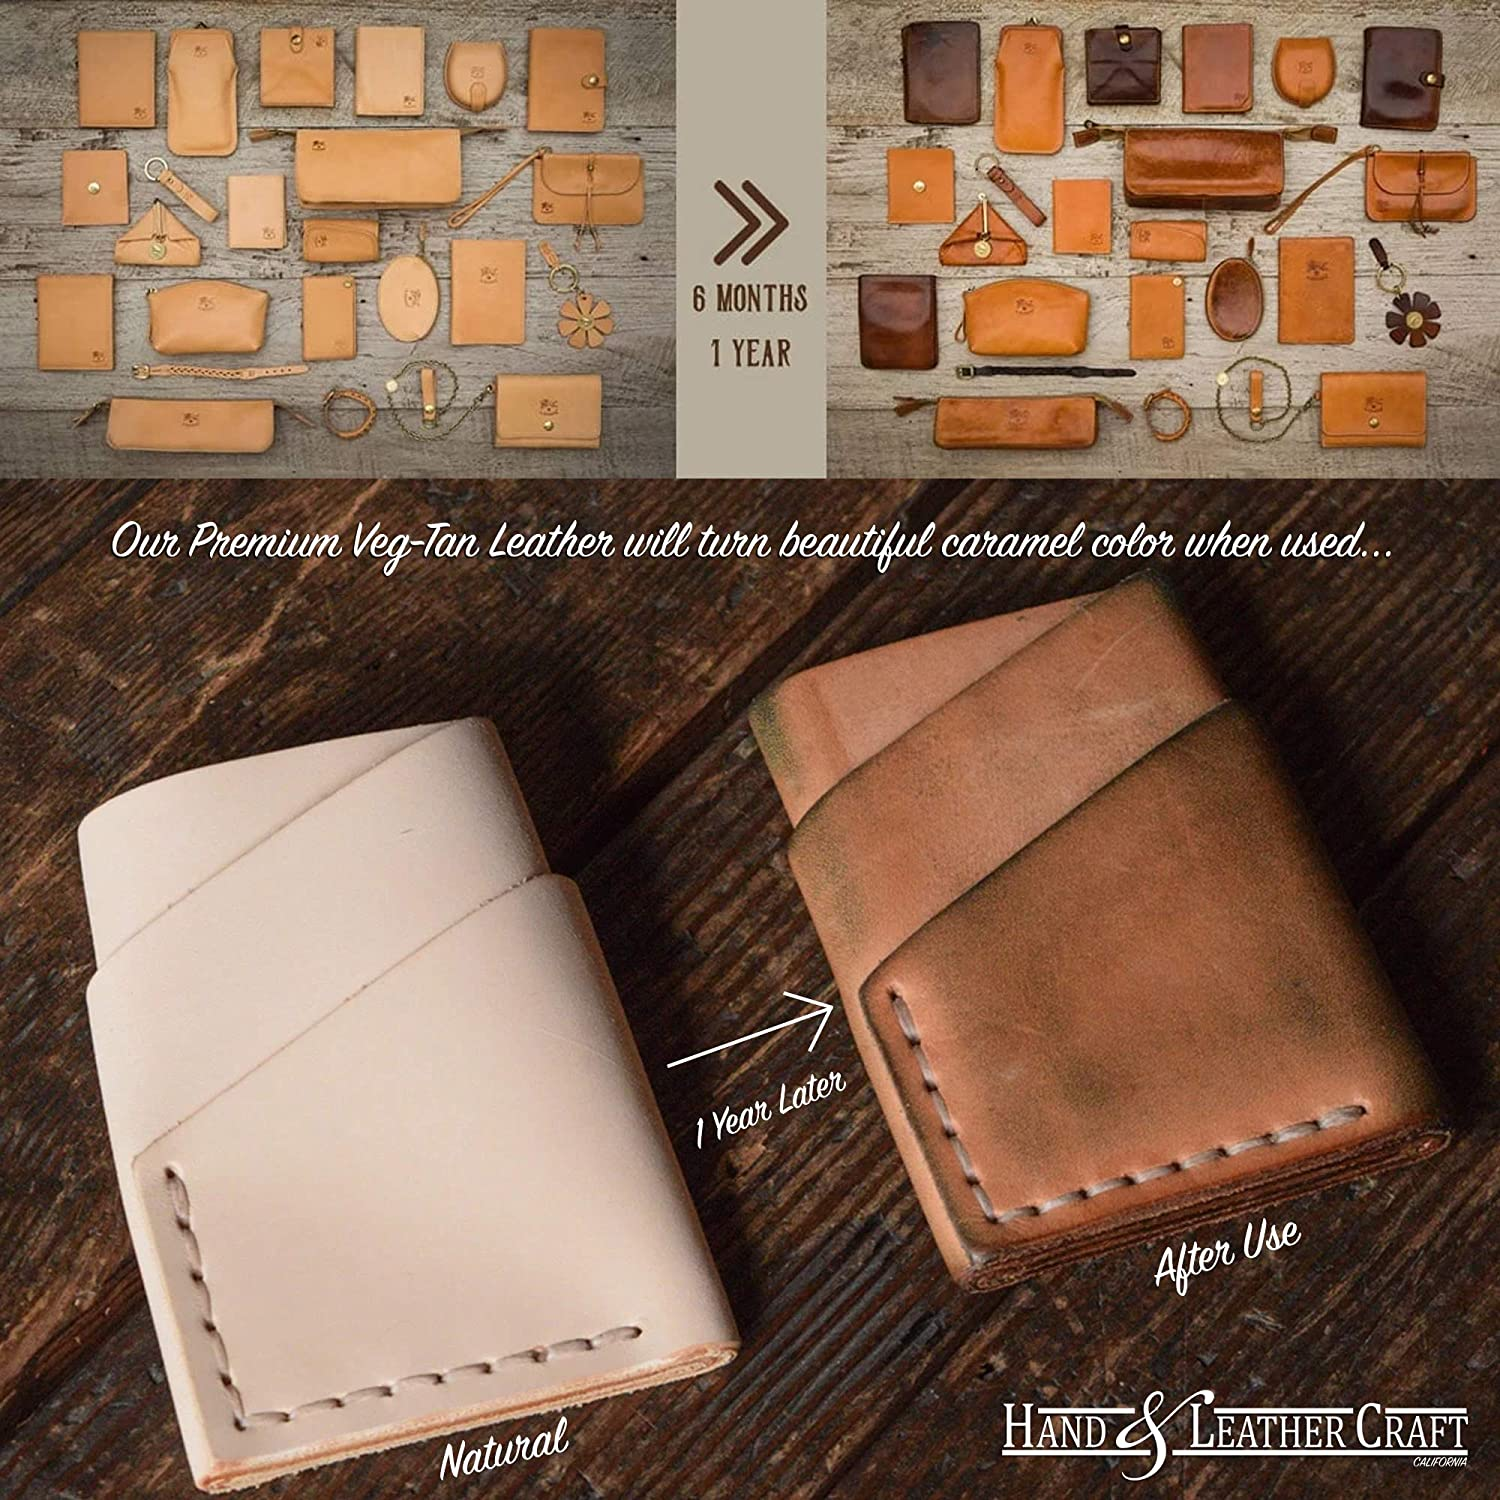 Veg Tan Leather 5//6 oz A Grade Tooling Leather Hide Molding Tooling Hand and Leather Craft 24x24 Dyeing 2.0-2.4mm Full Grain Vegetable Tanned Leather Carving 4 Sqft